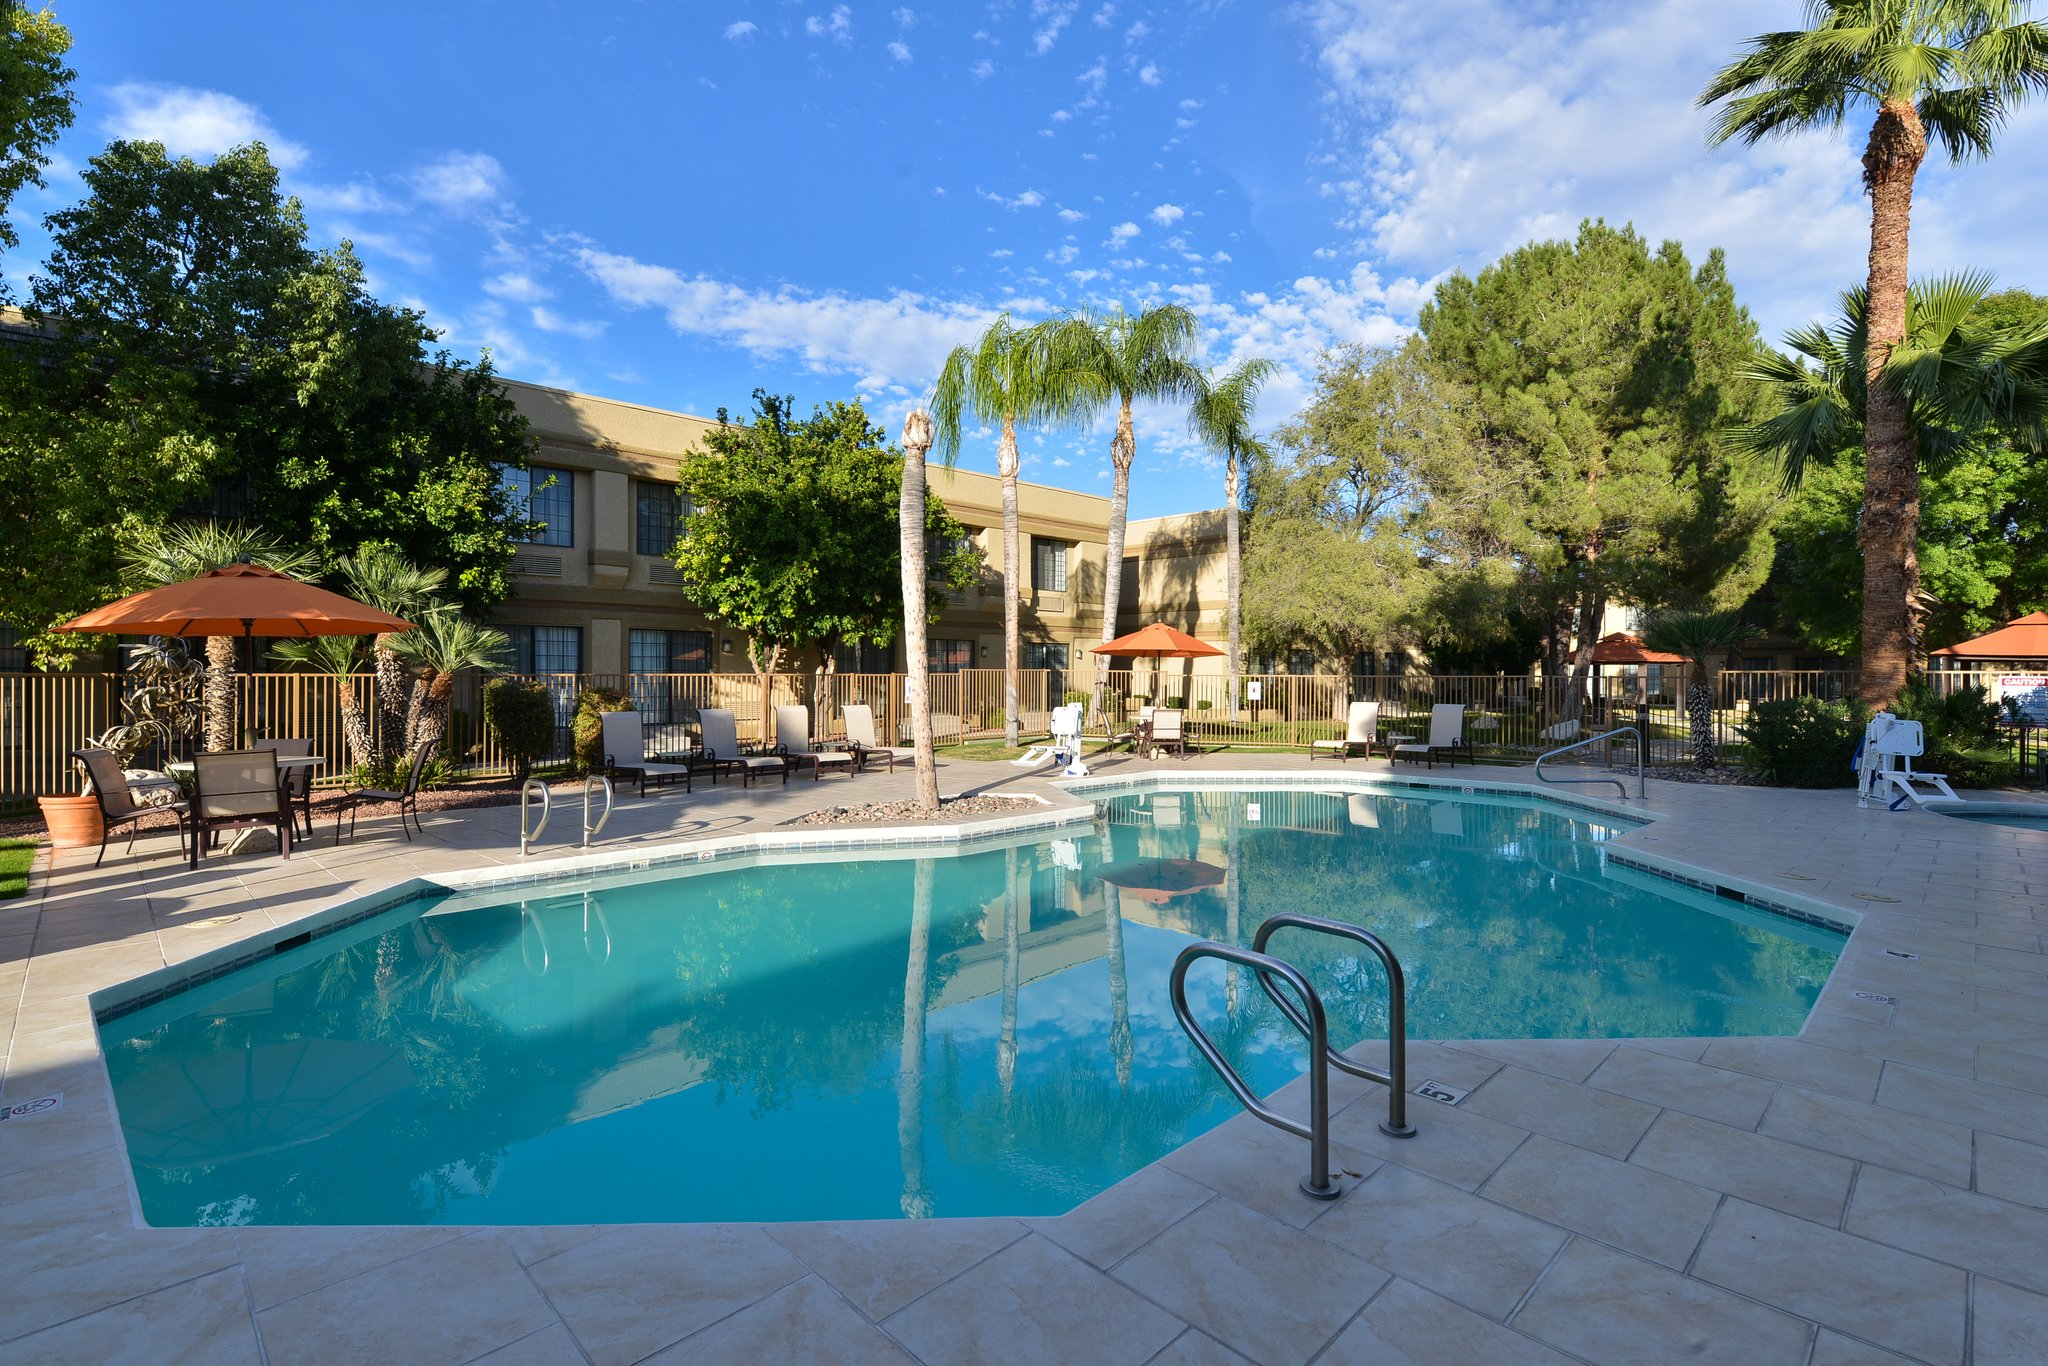 home | best western plus tucson int'l airport hotel & suites